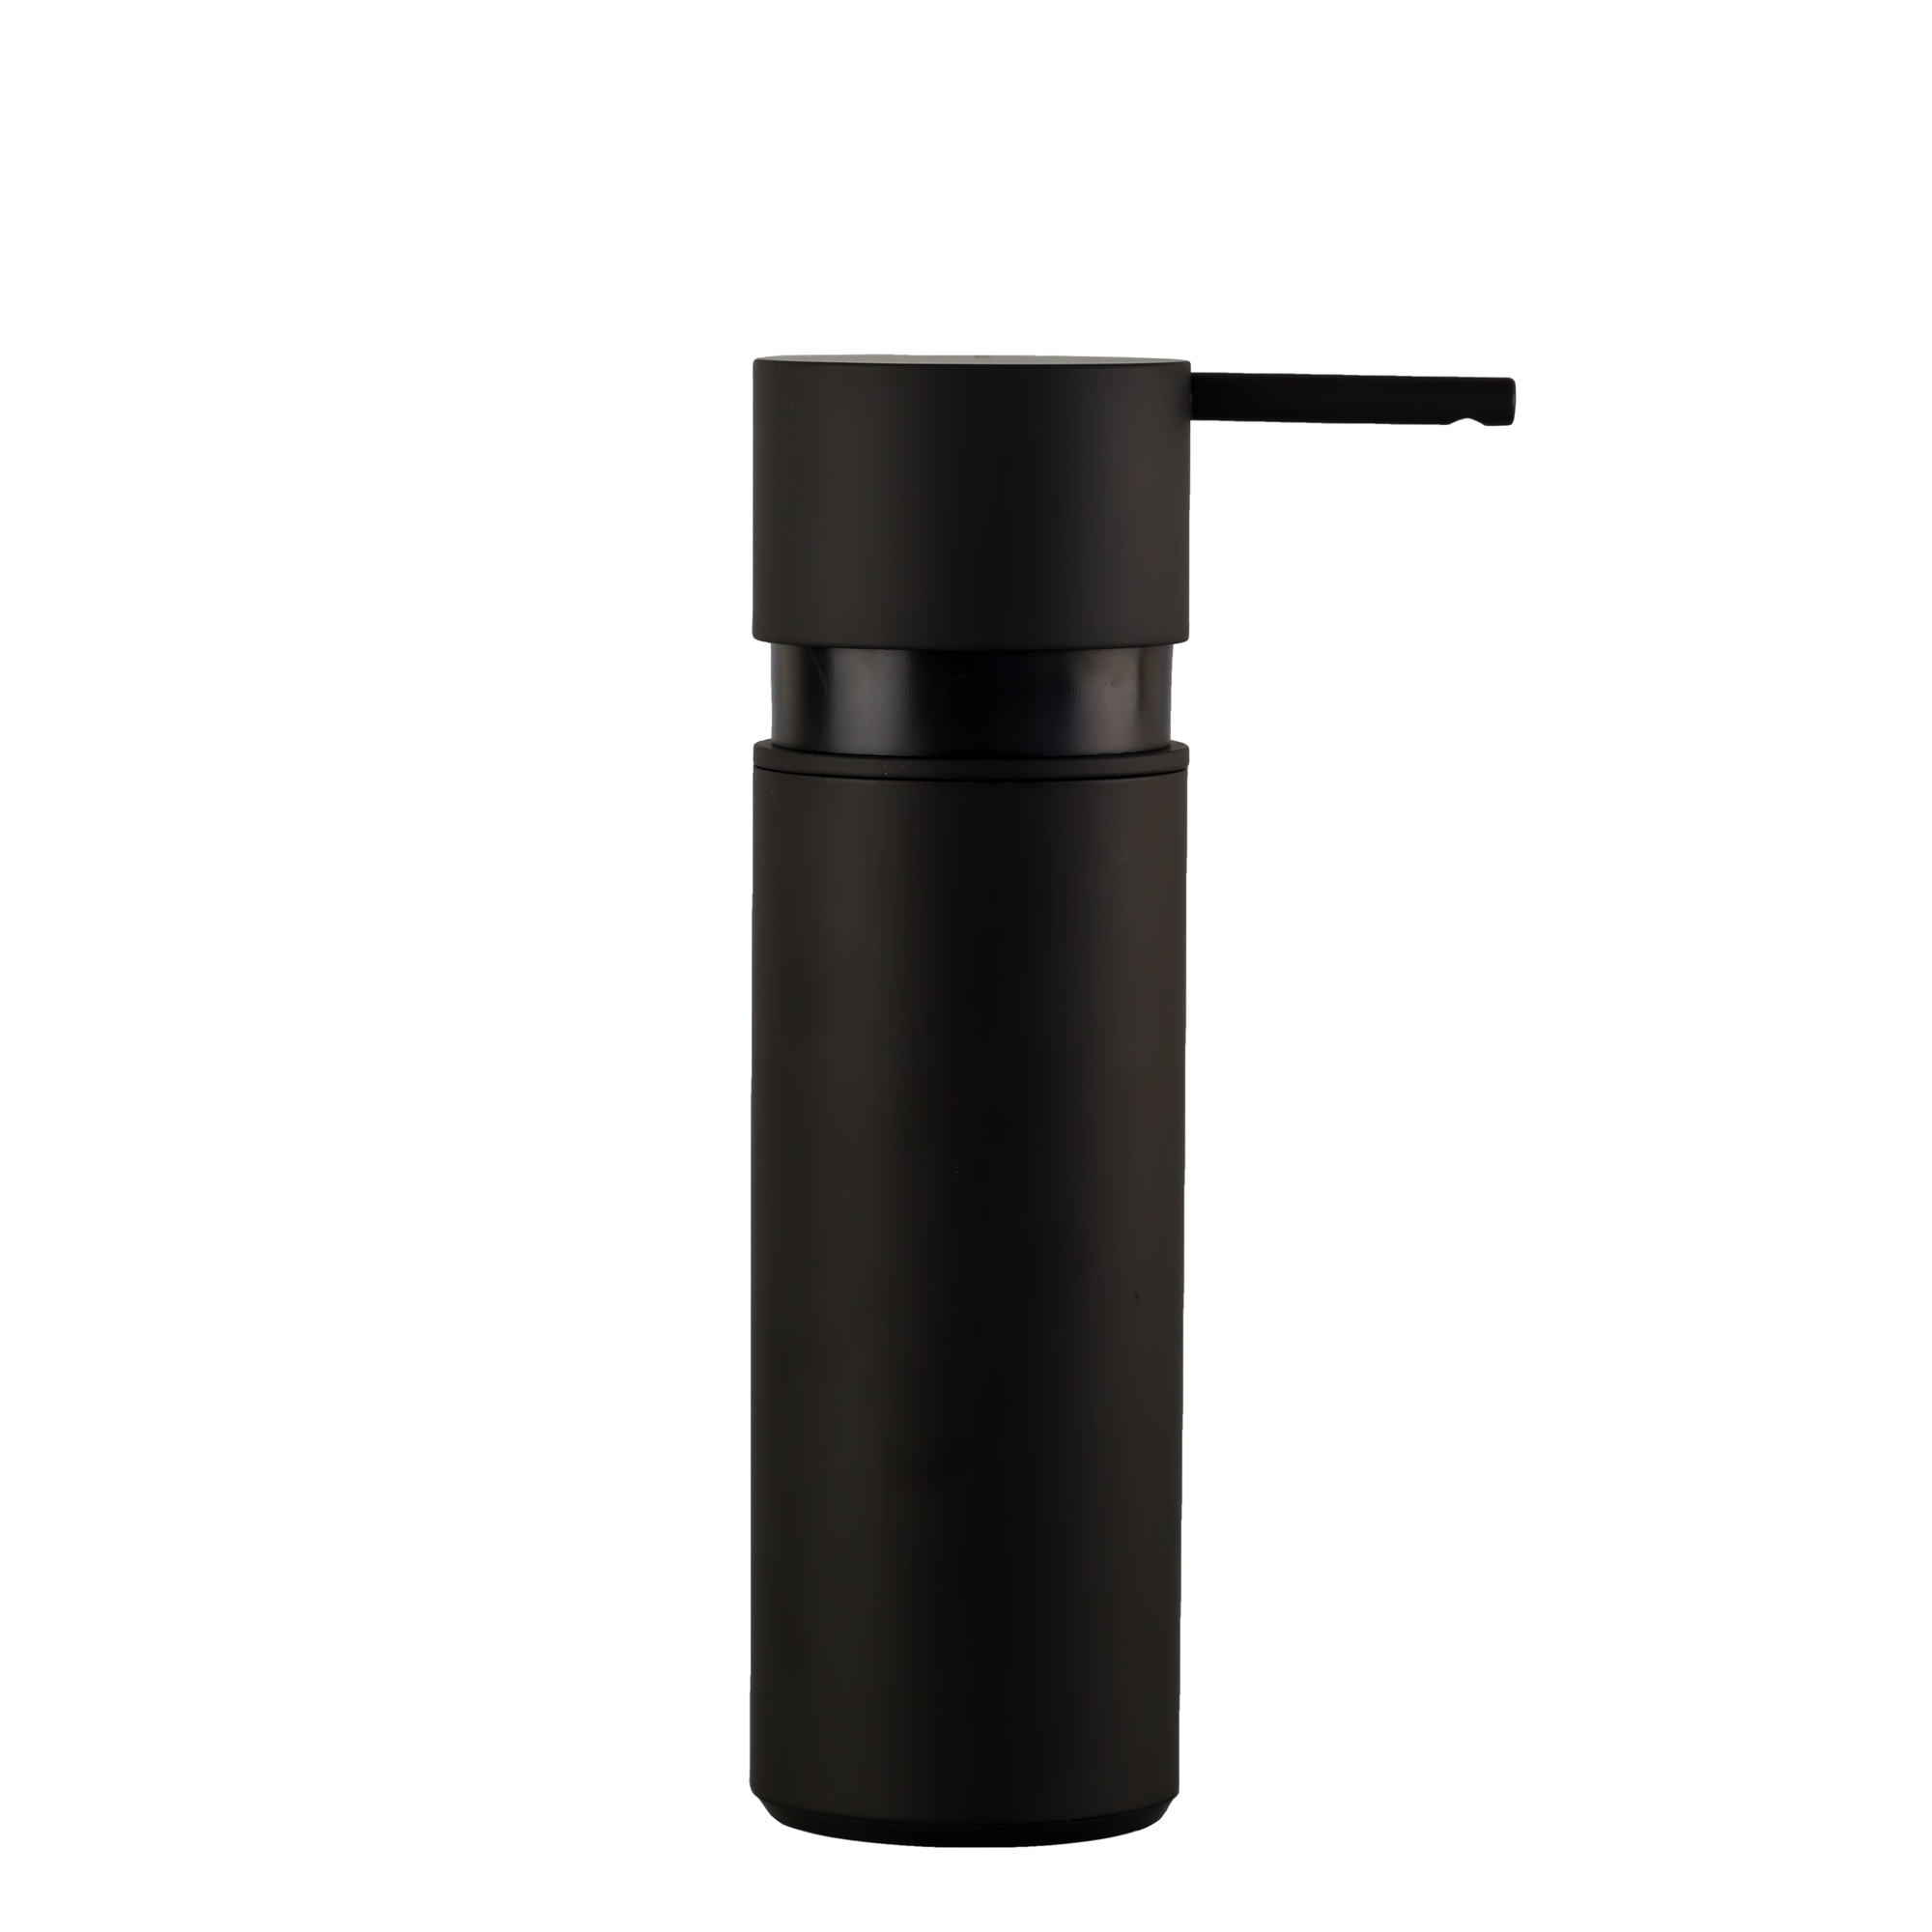 Nova2 Soap Dispenser- Black